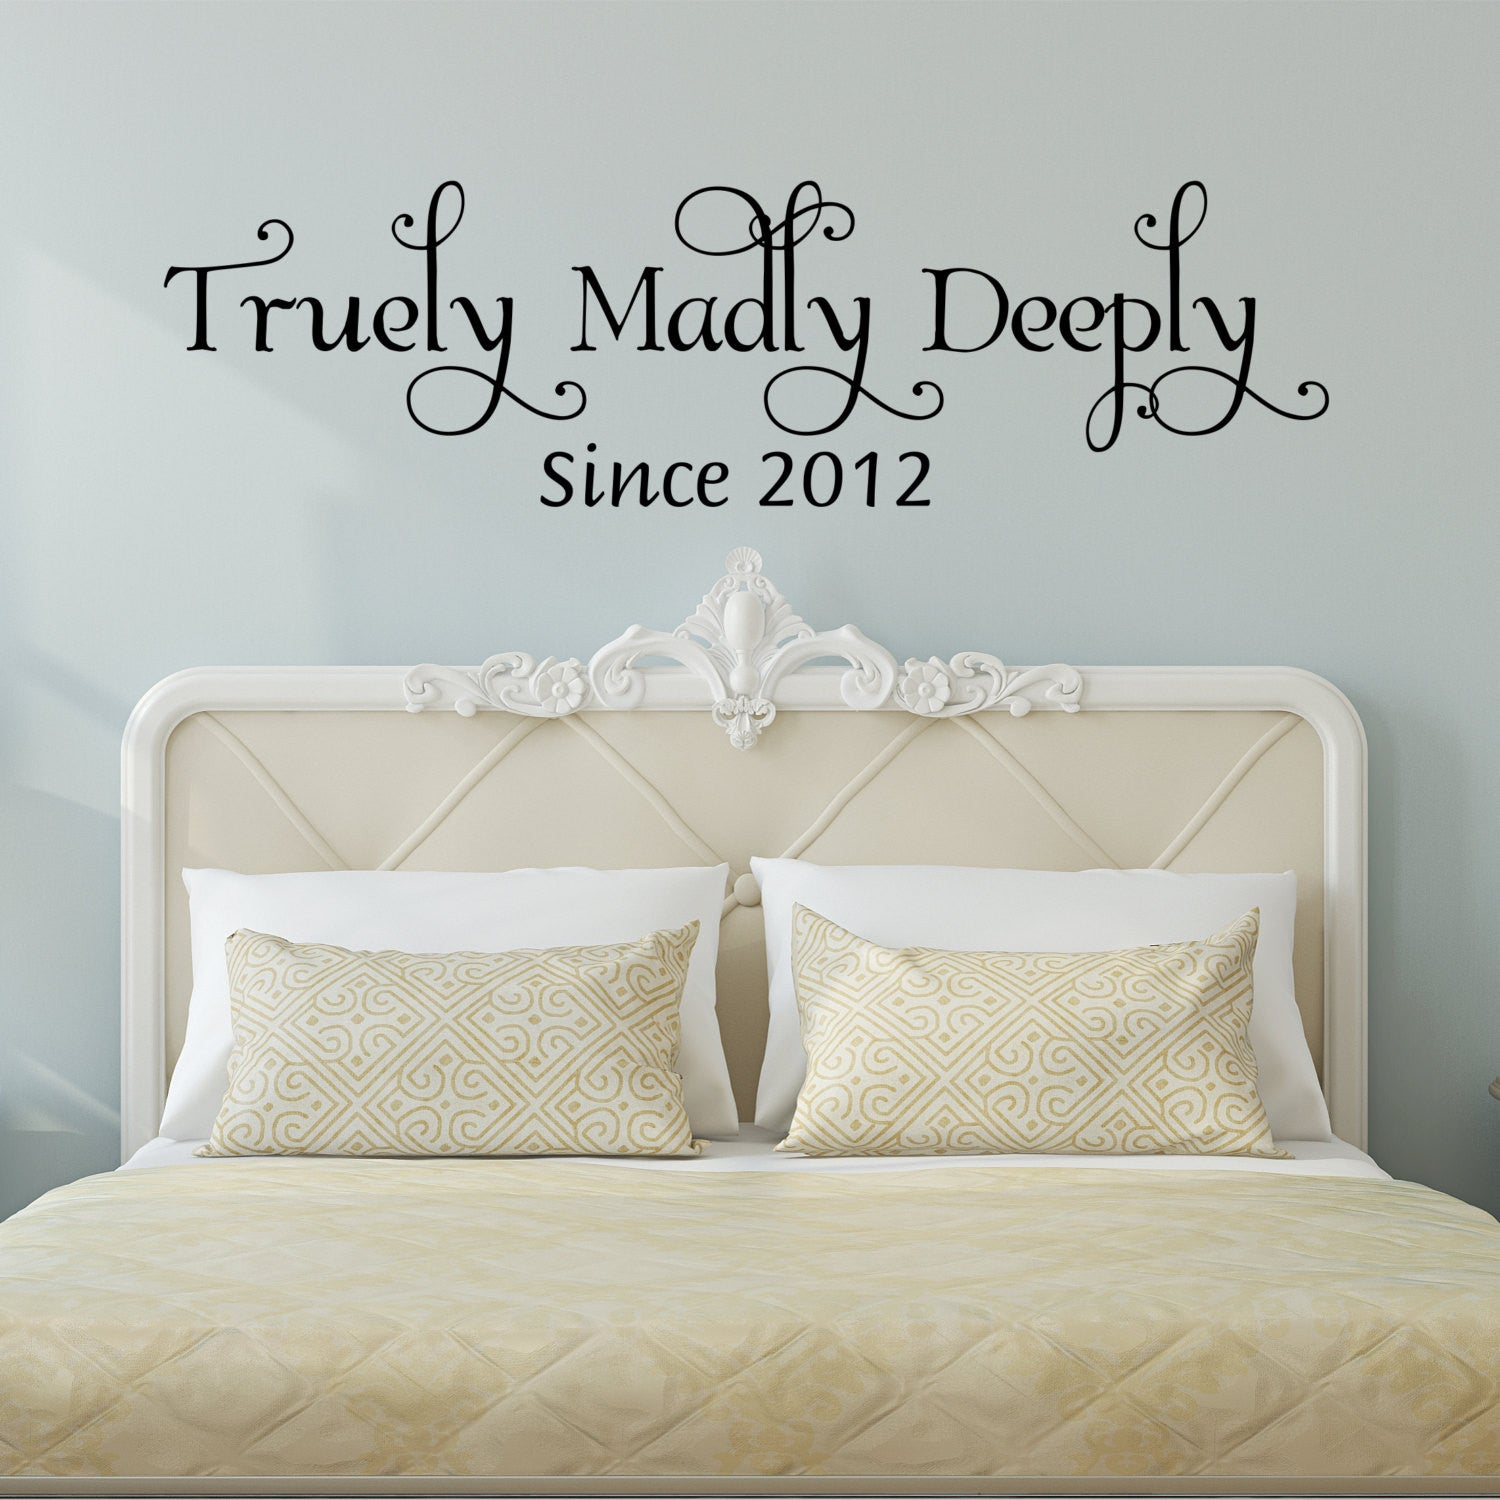 Truly Madly Deeply Wall Decal- by Decor Designs Decals, Bedroom Wall Decal  - Bedroom Decor - Bedroom Wall Decor-Master Bedroom Decor- Bedroom Decal-  ...